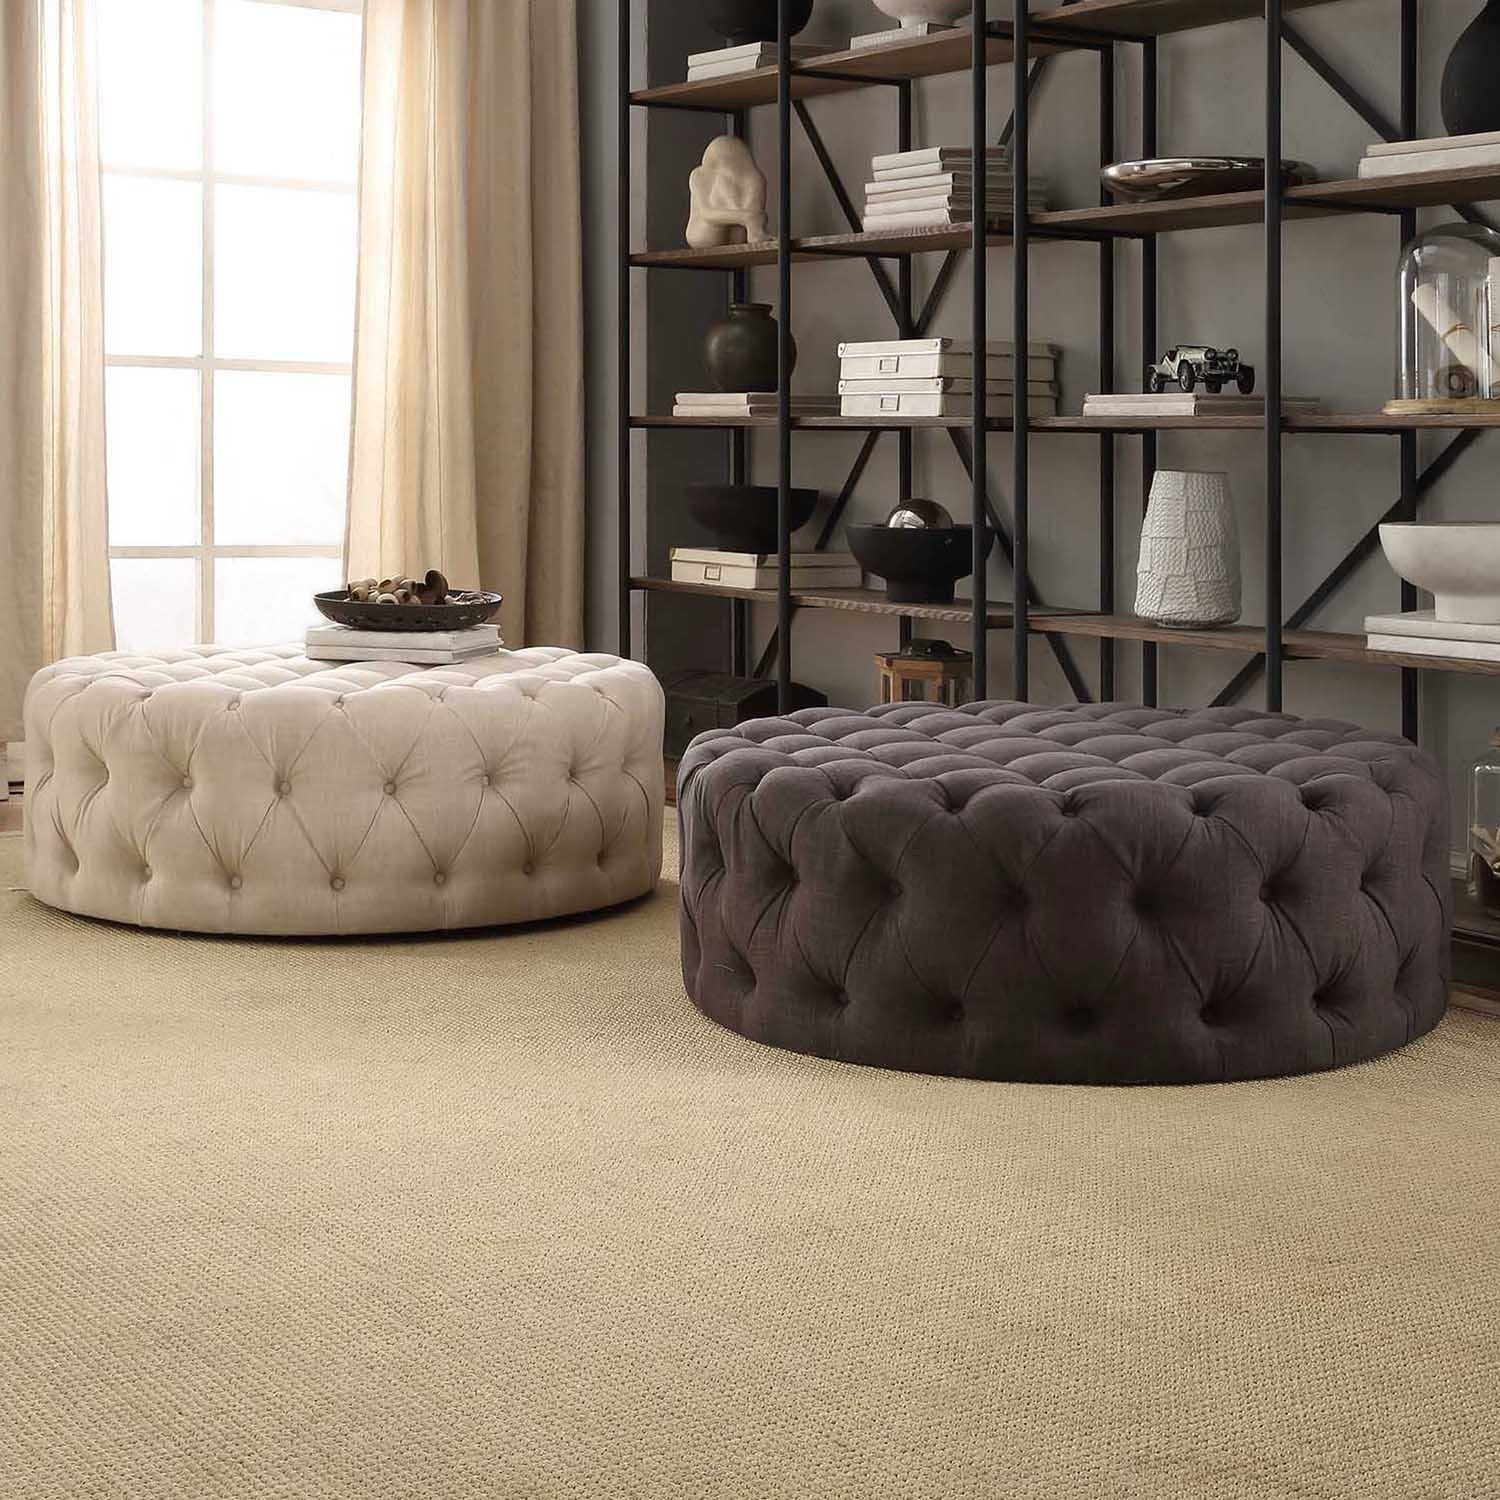 Couchtisch H&m Knightsbridge Round Tufted Cocktail Ottoman With Casters